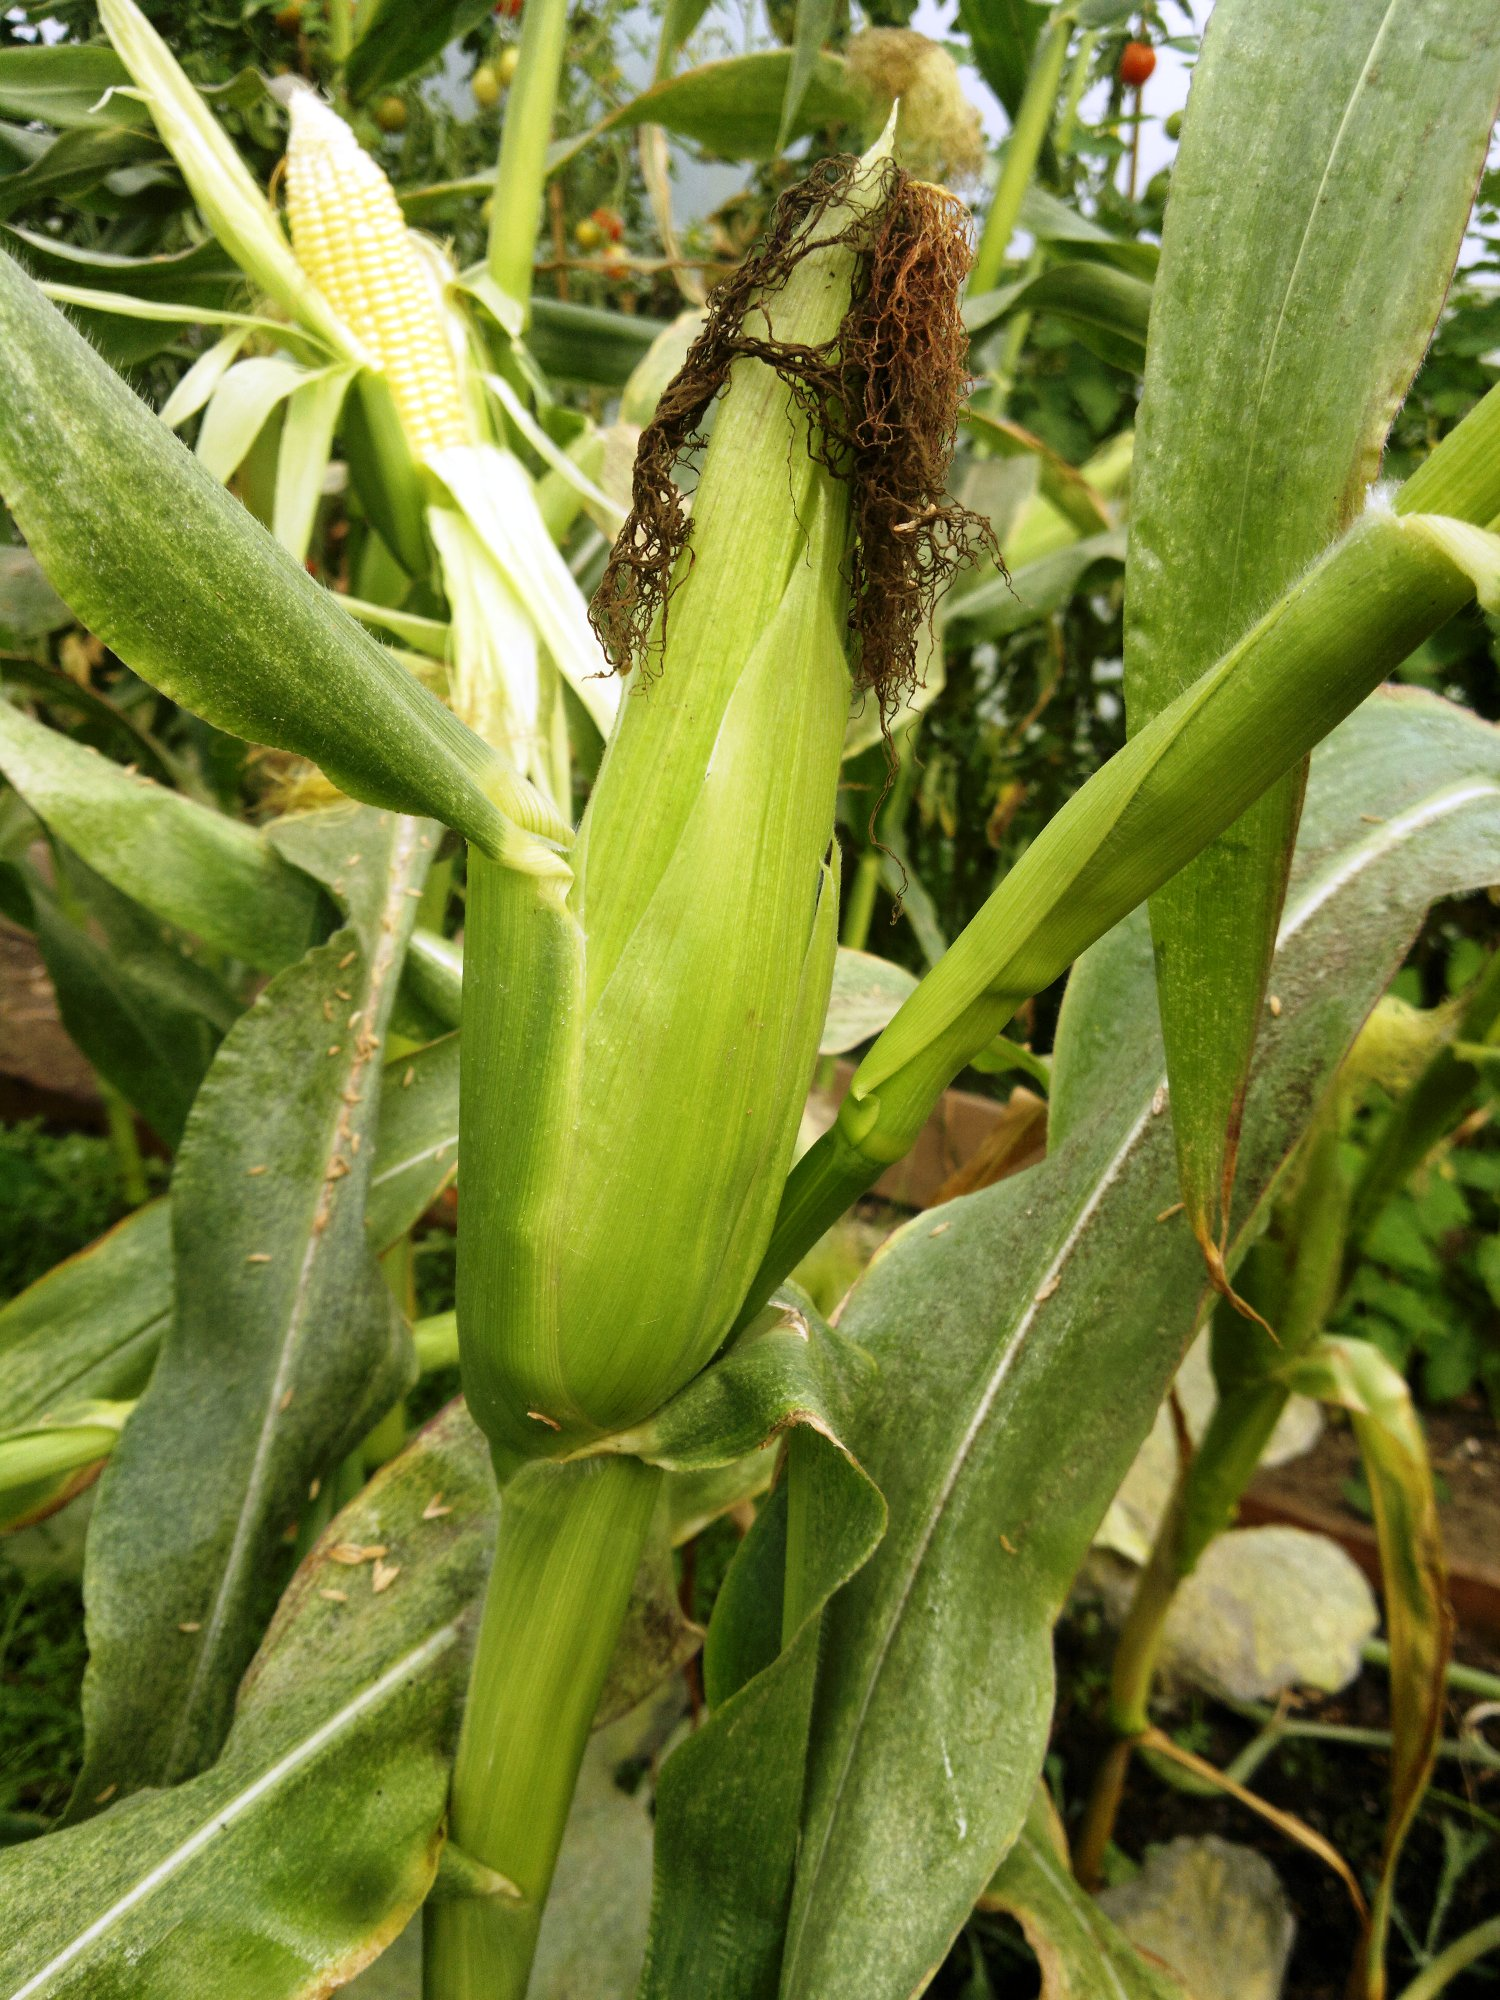 Note how the developing cob has caused the stem to bend